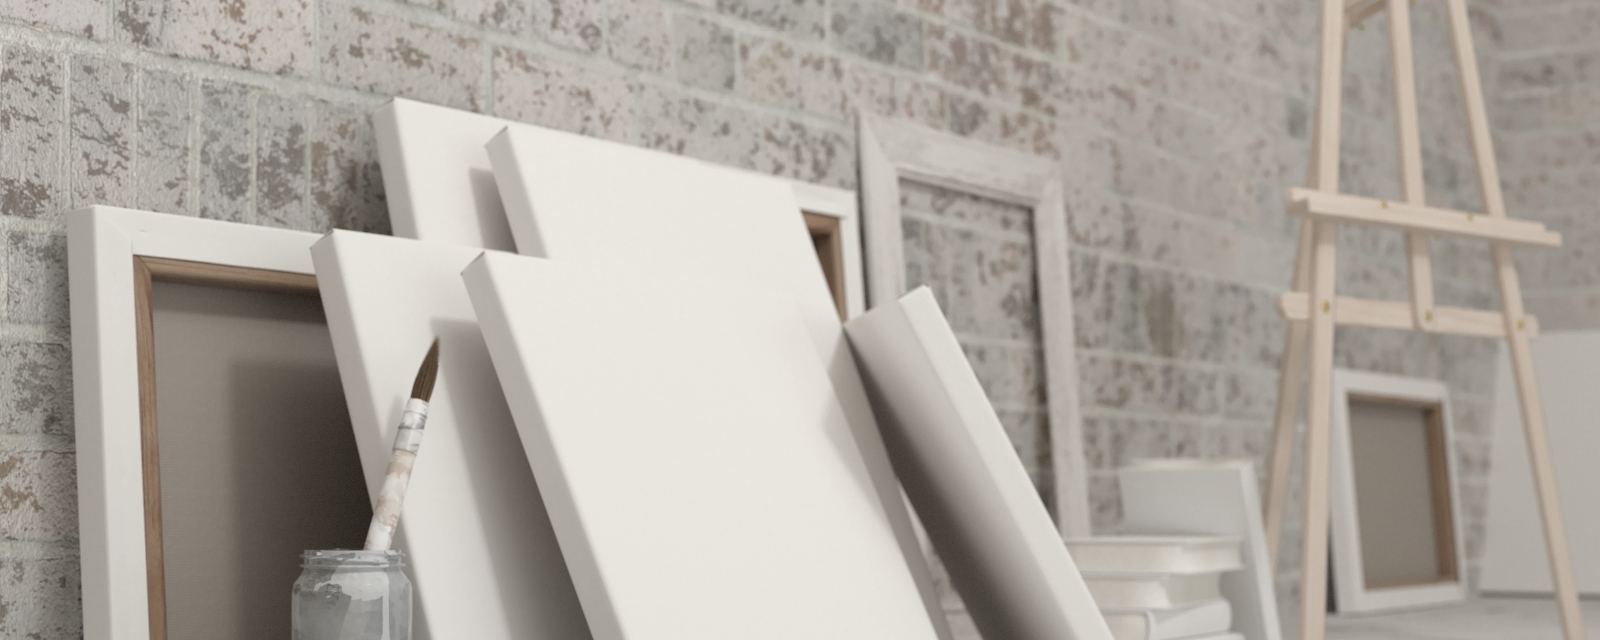 blank artist canvases and an easel leaning against a wall